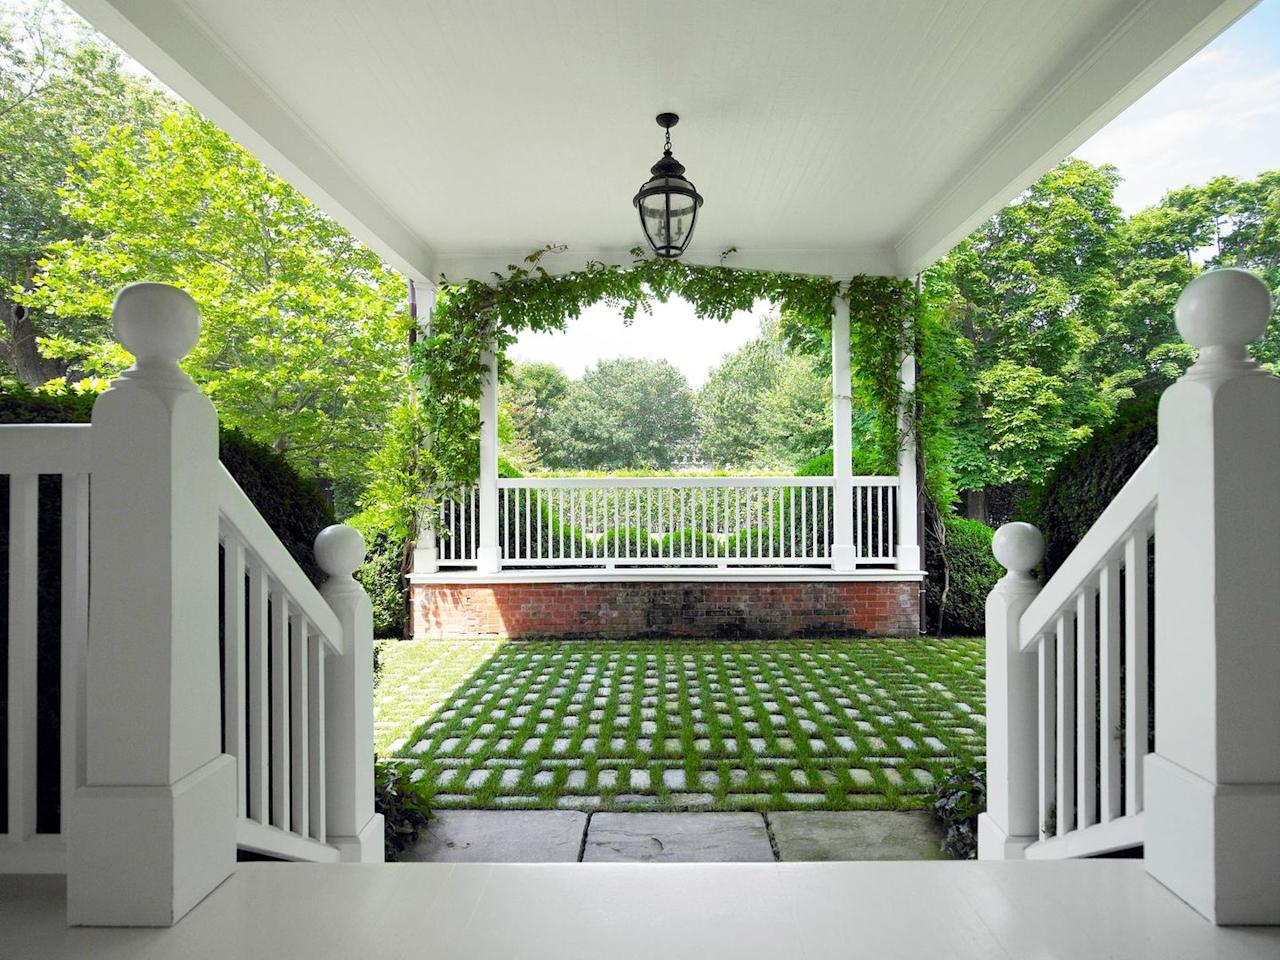 "<p><strong>The Style Guide: </strong>Concrete driveways love oil stains, so if you host a lot and love the look of green gardens, make your drive-up entry look like a valet-ready country club with permeable stone pavers. This beautiful driveway by <a href=""https://hollanderdesign.com/"" target=""_blank"">Hollander Design</a> is all the convincing we need. </p><p><strong>The Practical Need-to-Know:</strong> Permeable stone pavers are a drivable surface with stormwater drainage and, best of all, grassy green good looks. Because they're great for drainage, think about putting them wherever water tends to collect.</p>"